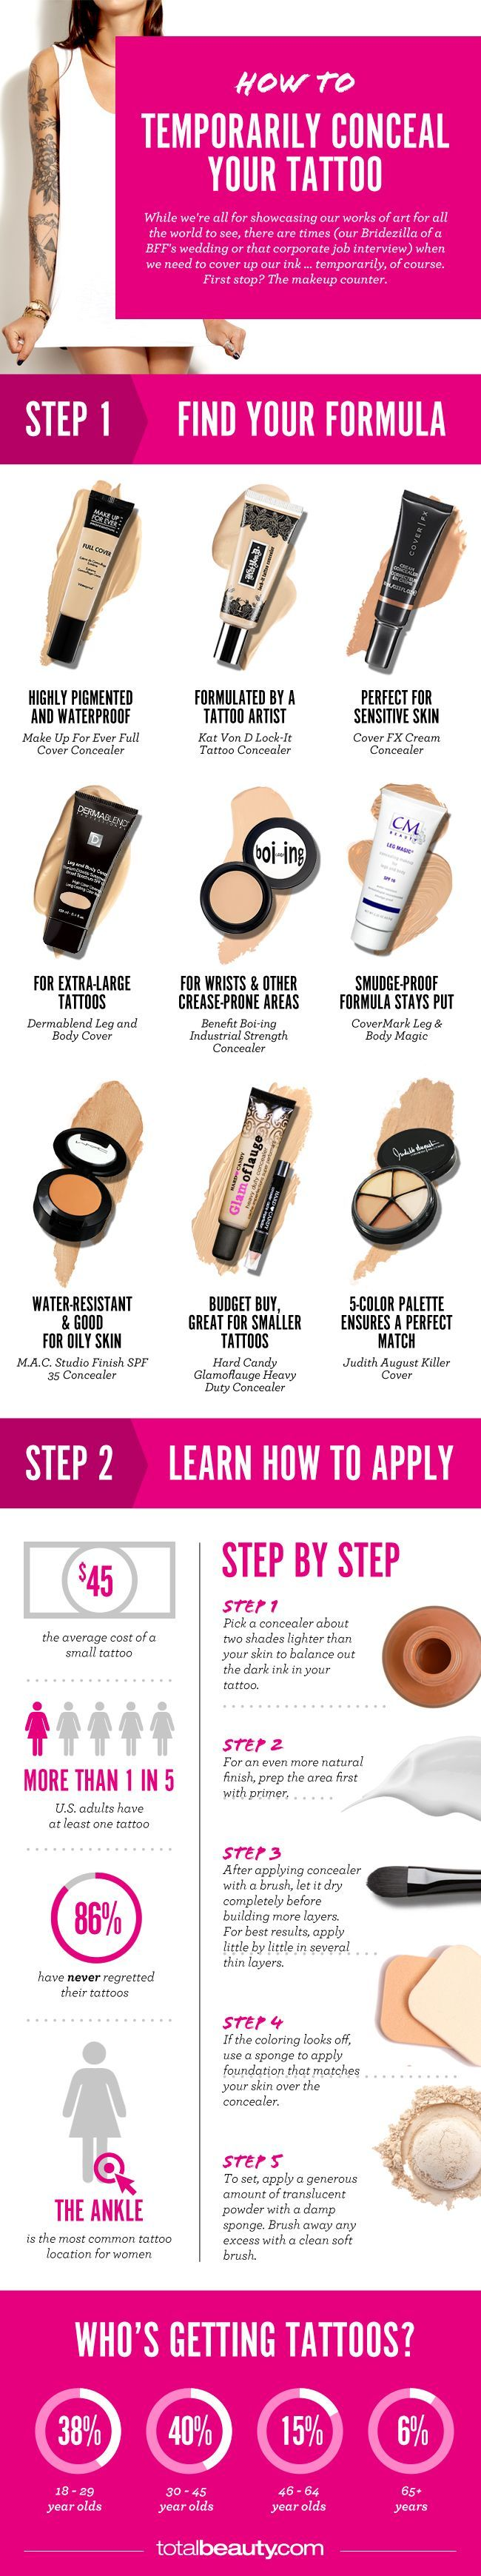 9 HeavyDuty Concealers That Can Cover Up Tattoos Tattoo